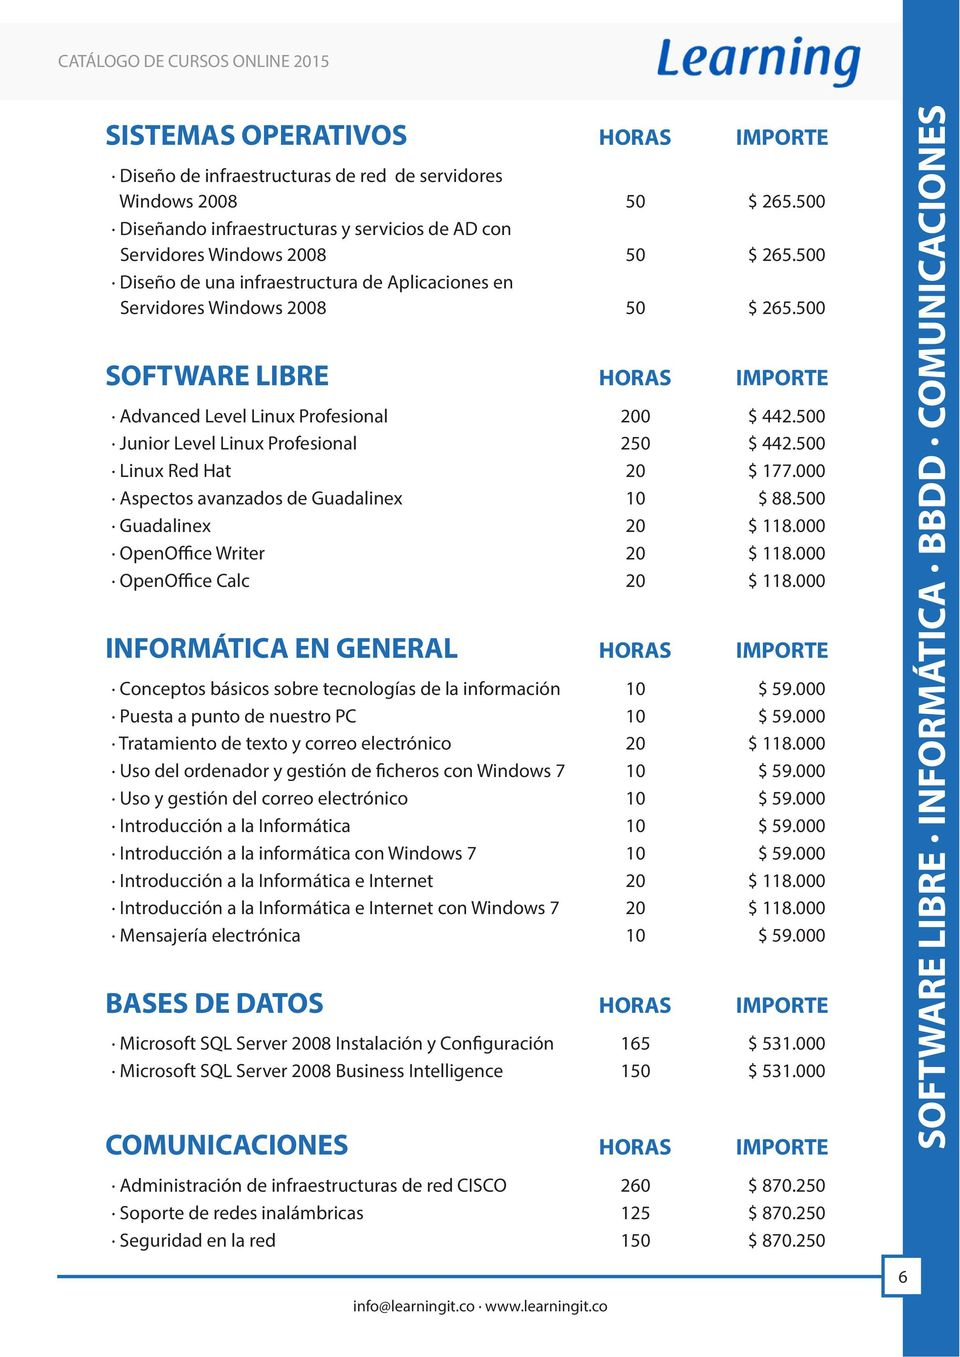 500 Junior Level Linux Profesional 250 $ 442.500 Linux Red Hat 20 $ 177.000 Aspectos avanzados de Guadalinex 10 $ 88.500 Guadalinex 20 $ 118.000 OpenOffice Writer 20 $ 118.